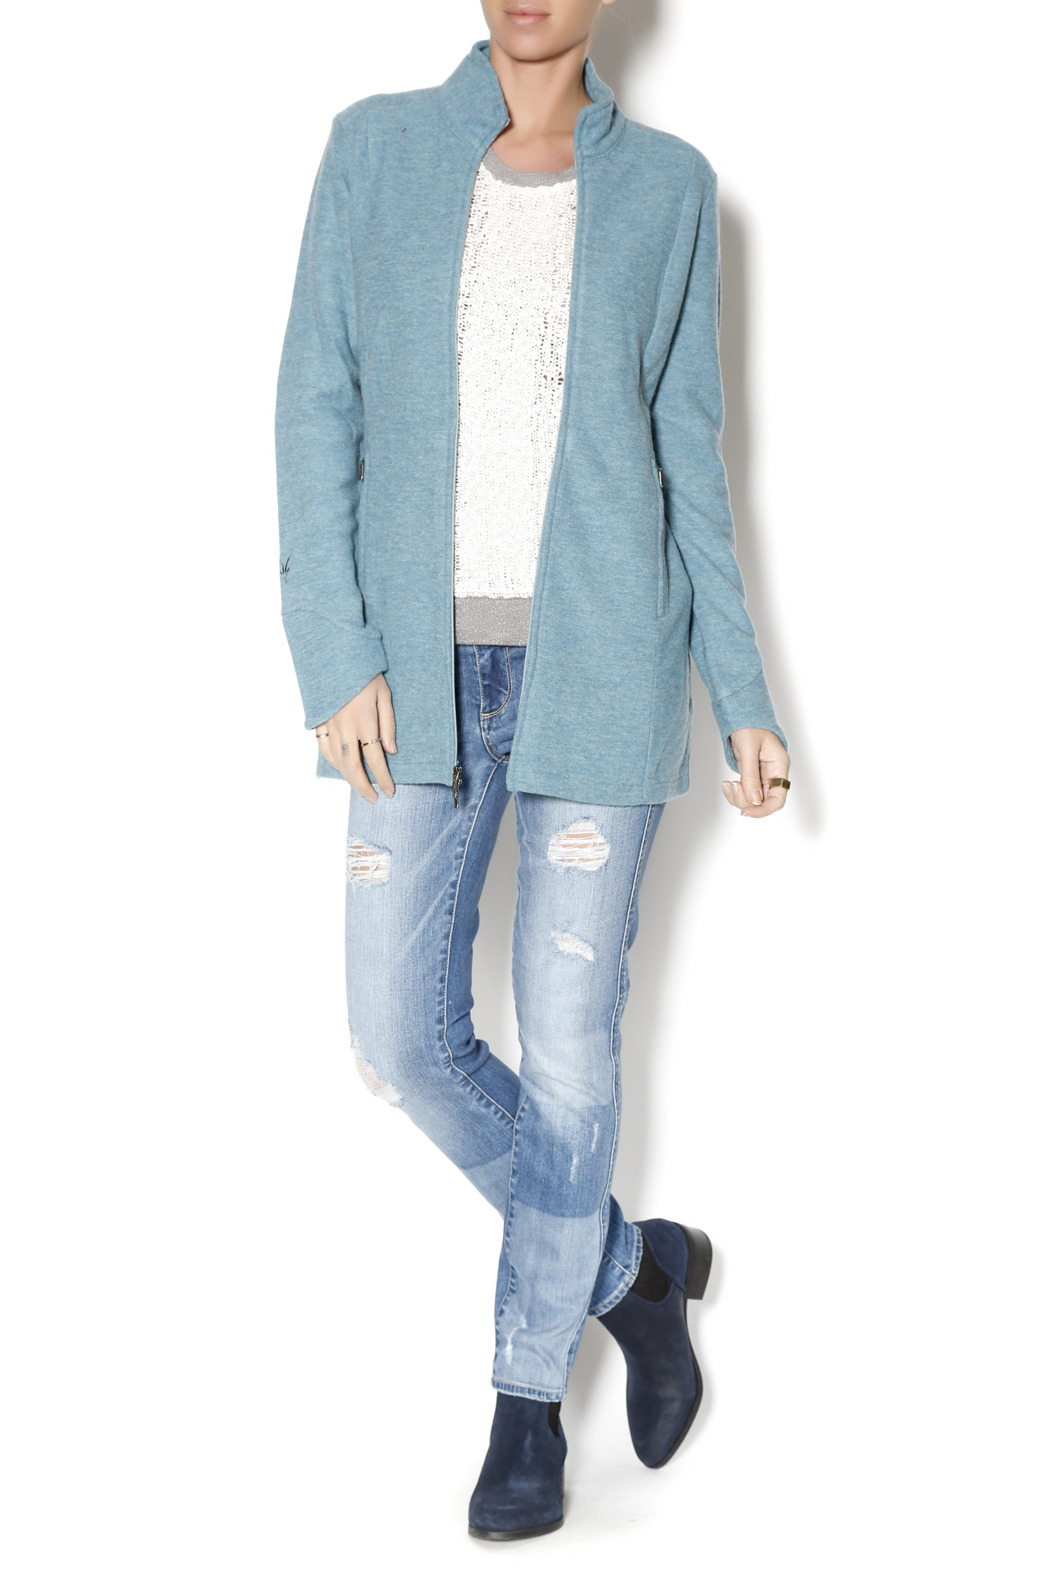 Ibex Ice Blue Jacket from New Hampshire by Ruggles & Hunt — Shoptiques